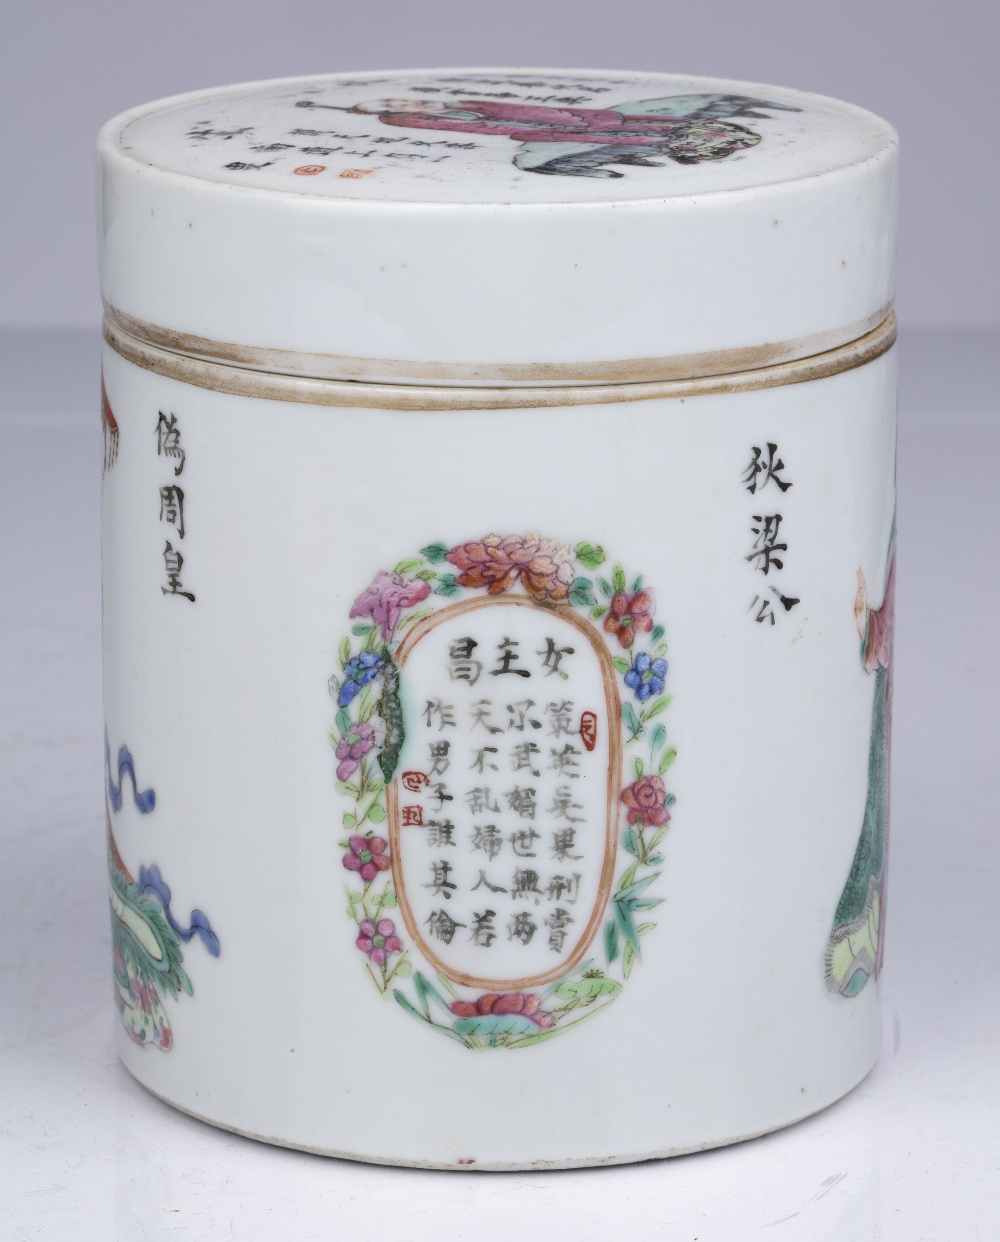 Famille rose porcelain box and cover Chinese, 19th Century painted with figures and inscriptions - Image 3 of 4